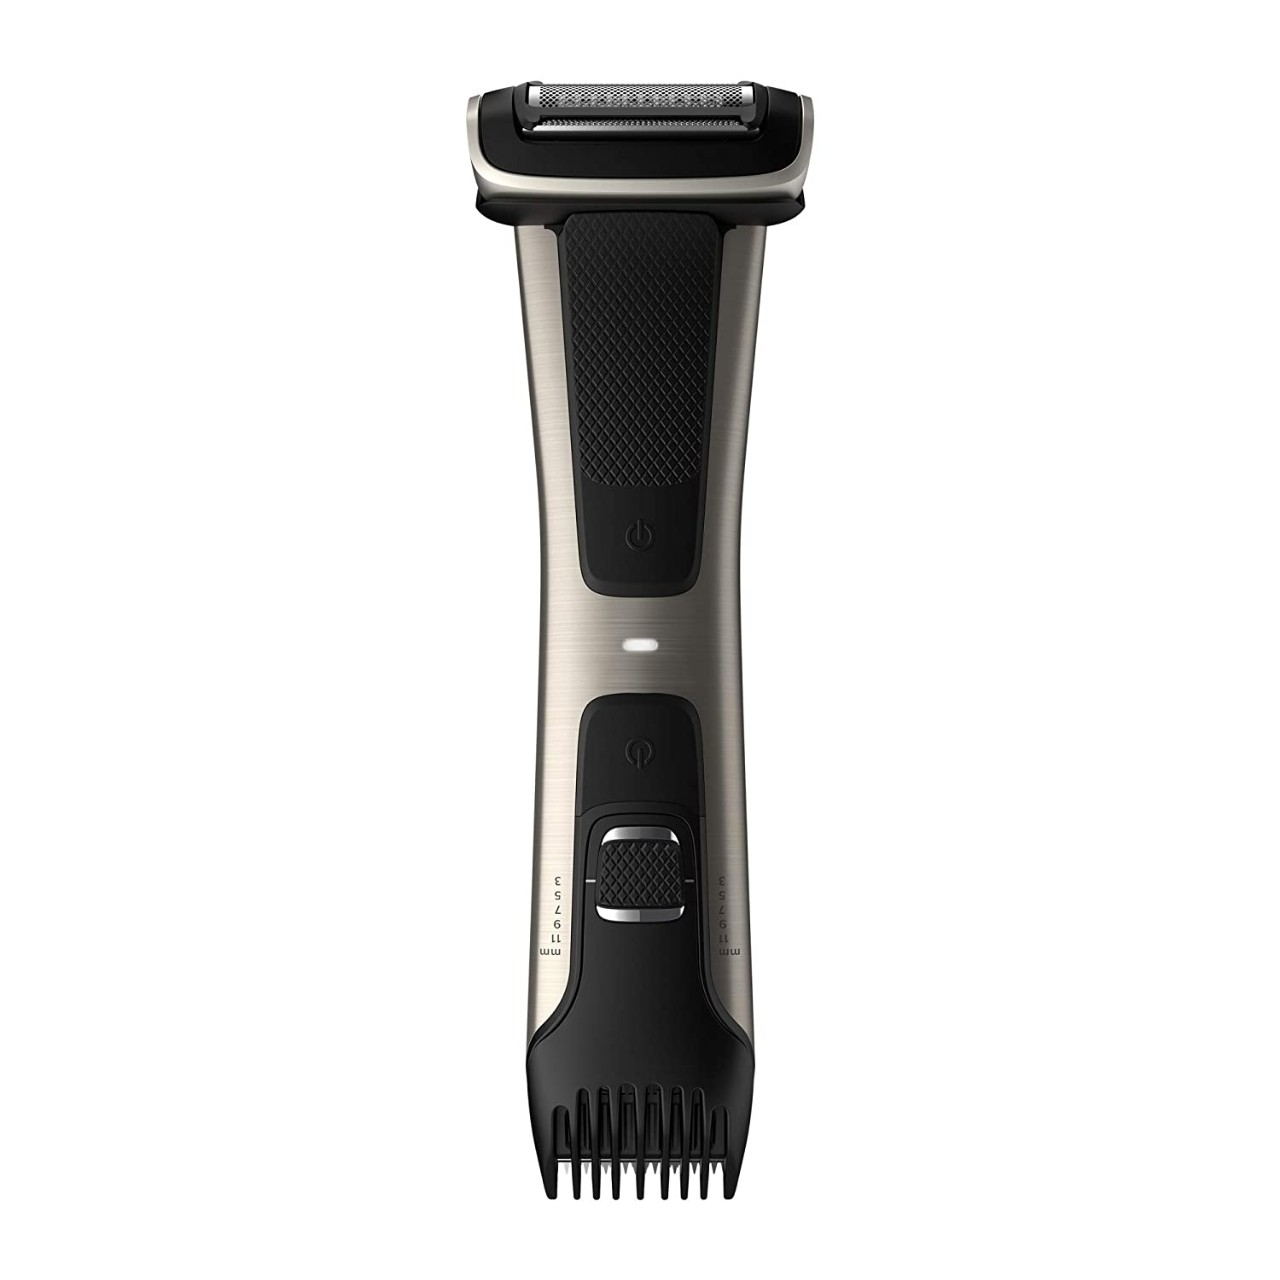 Philips Norelco BG7030/49 Bodygroom Series 7000, Showerproof Dual-sided Body Trimmer and Shaver